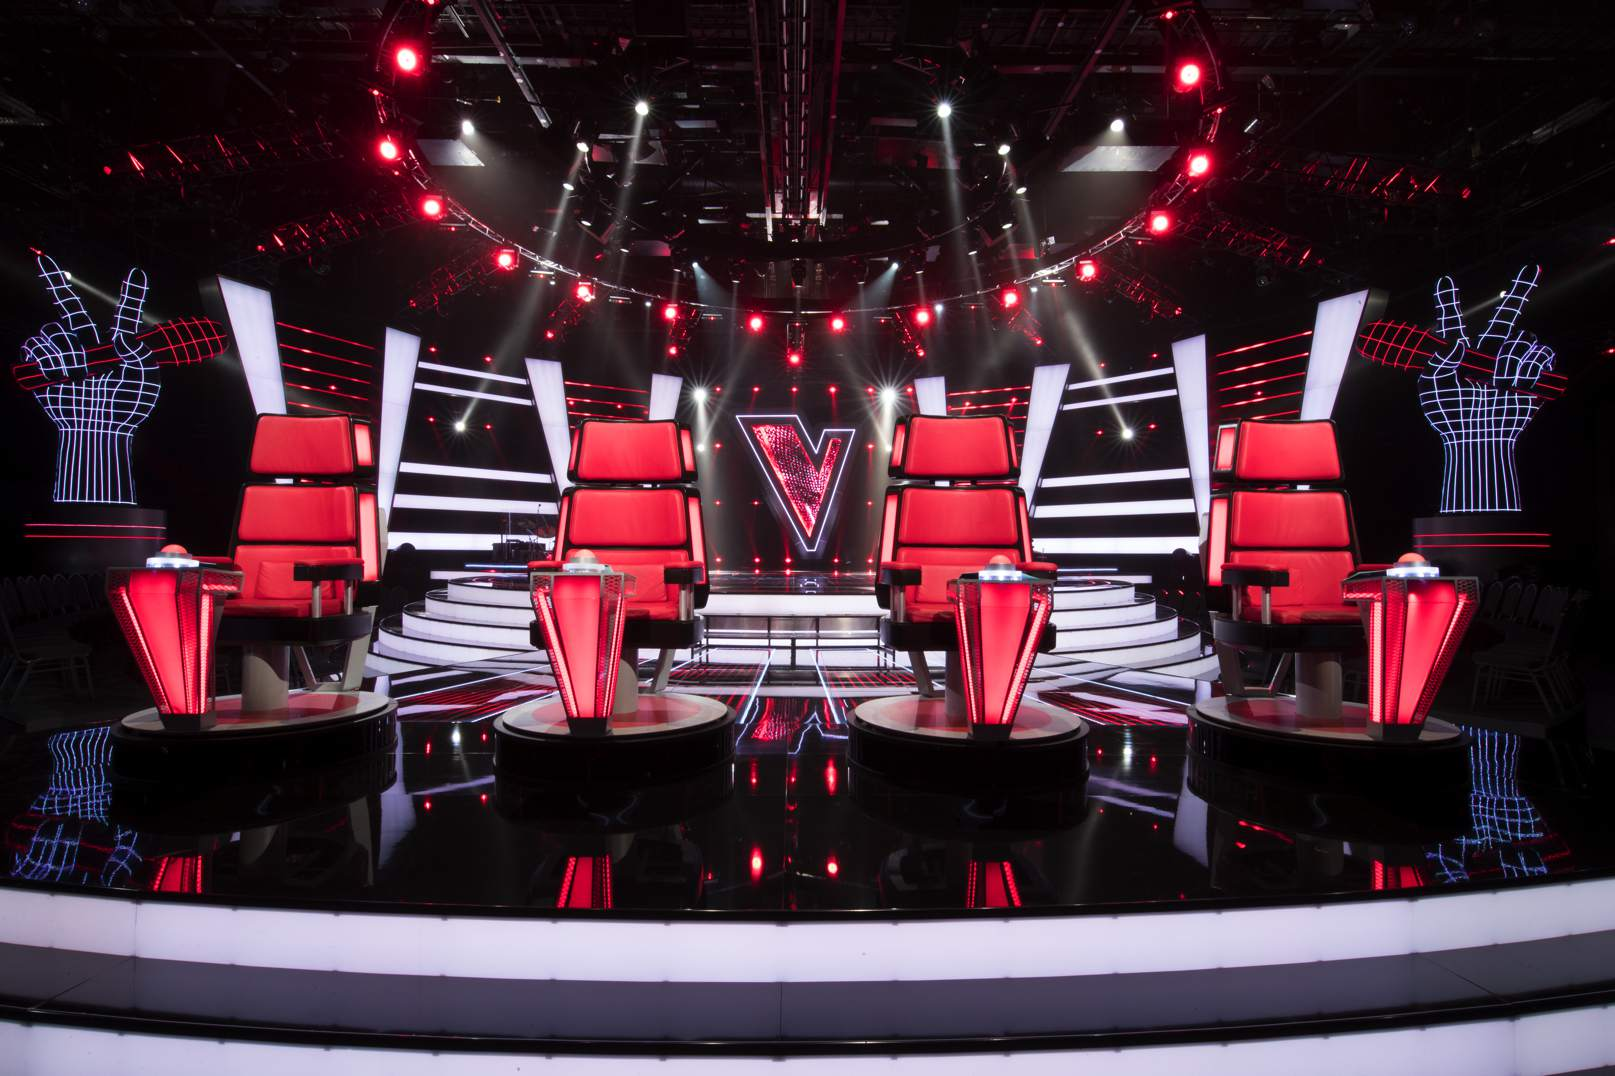 air chair frame waiting area chairs the voice of holland 2017 – 2018 | faber audiovisuals